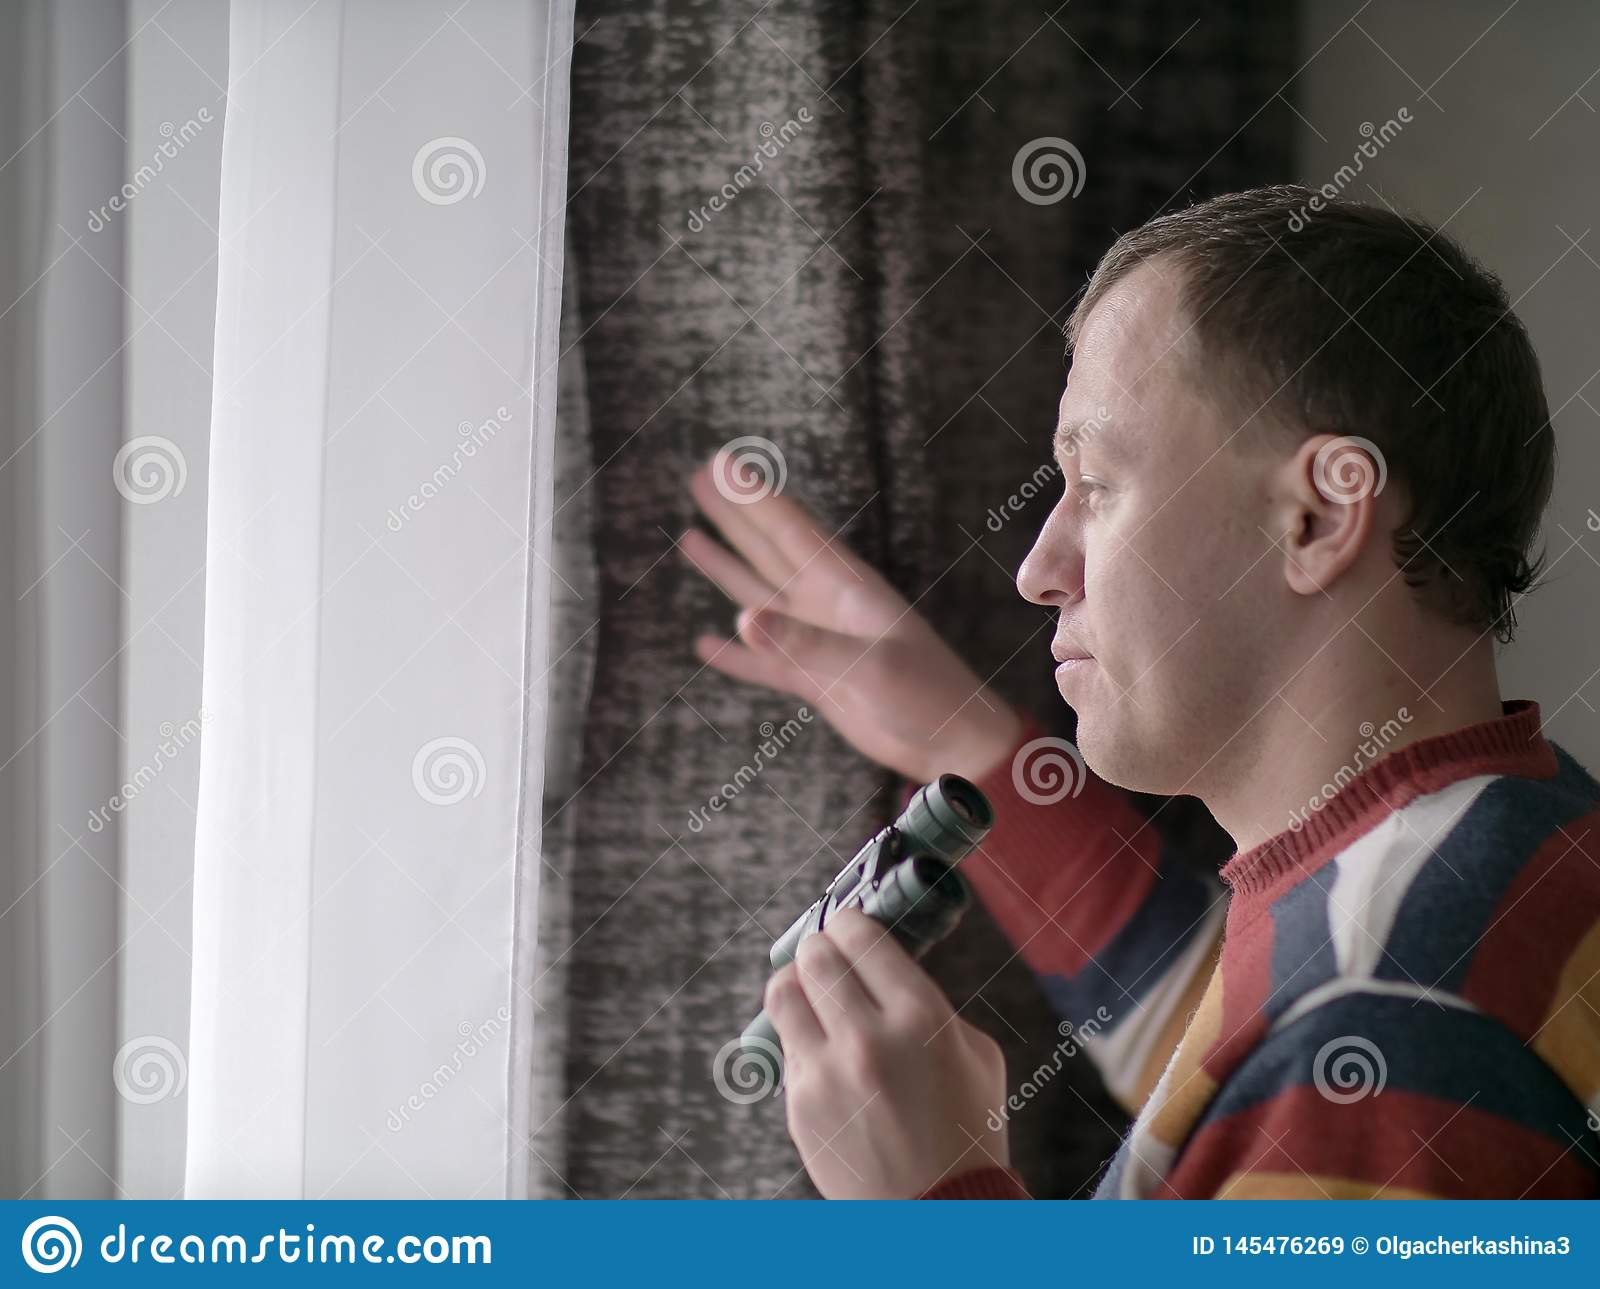 Young man looks out the window with binoculars, close-up